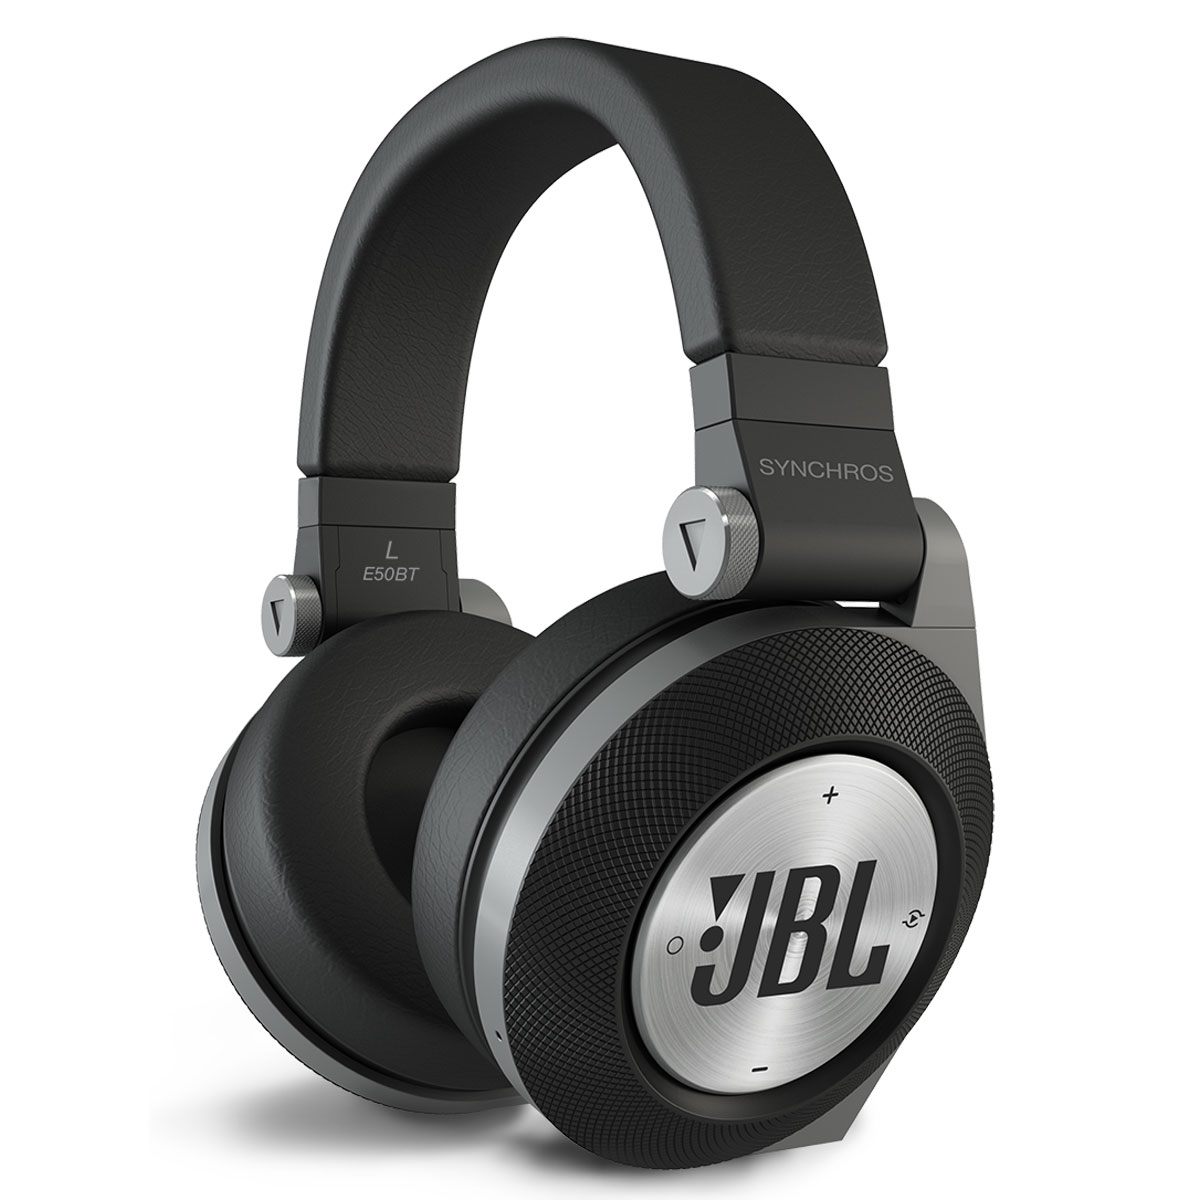 jbl e50bt noir casque jbl sur. Black Bedroom Furniture Sets. Home Design Ideas